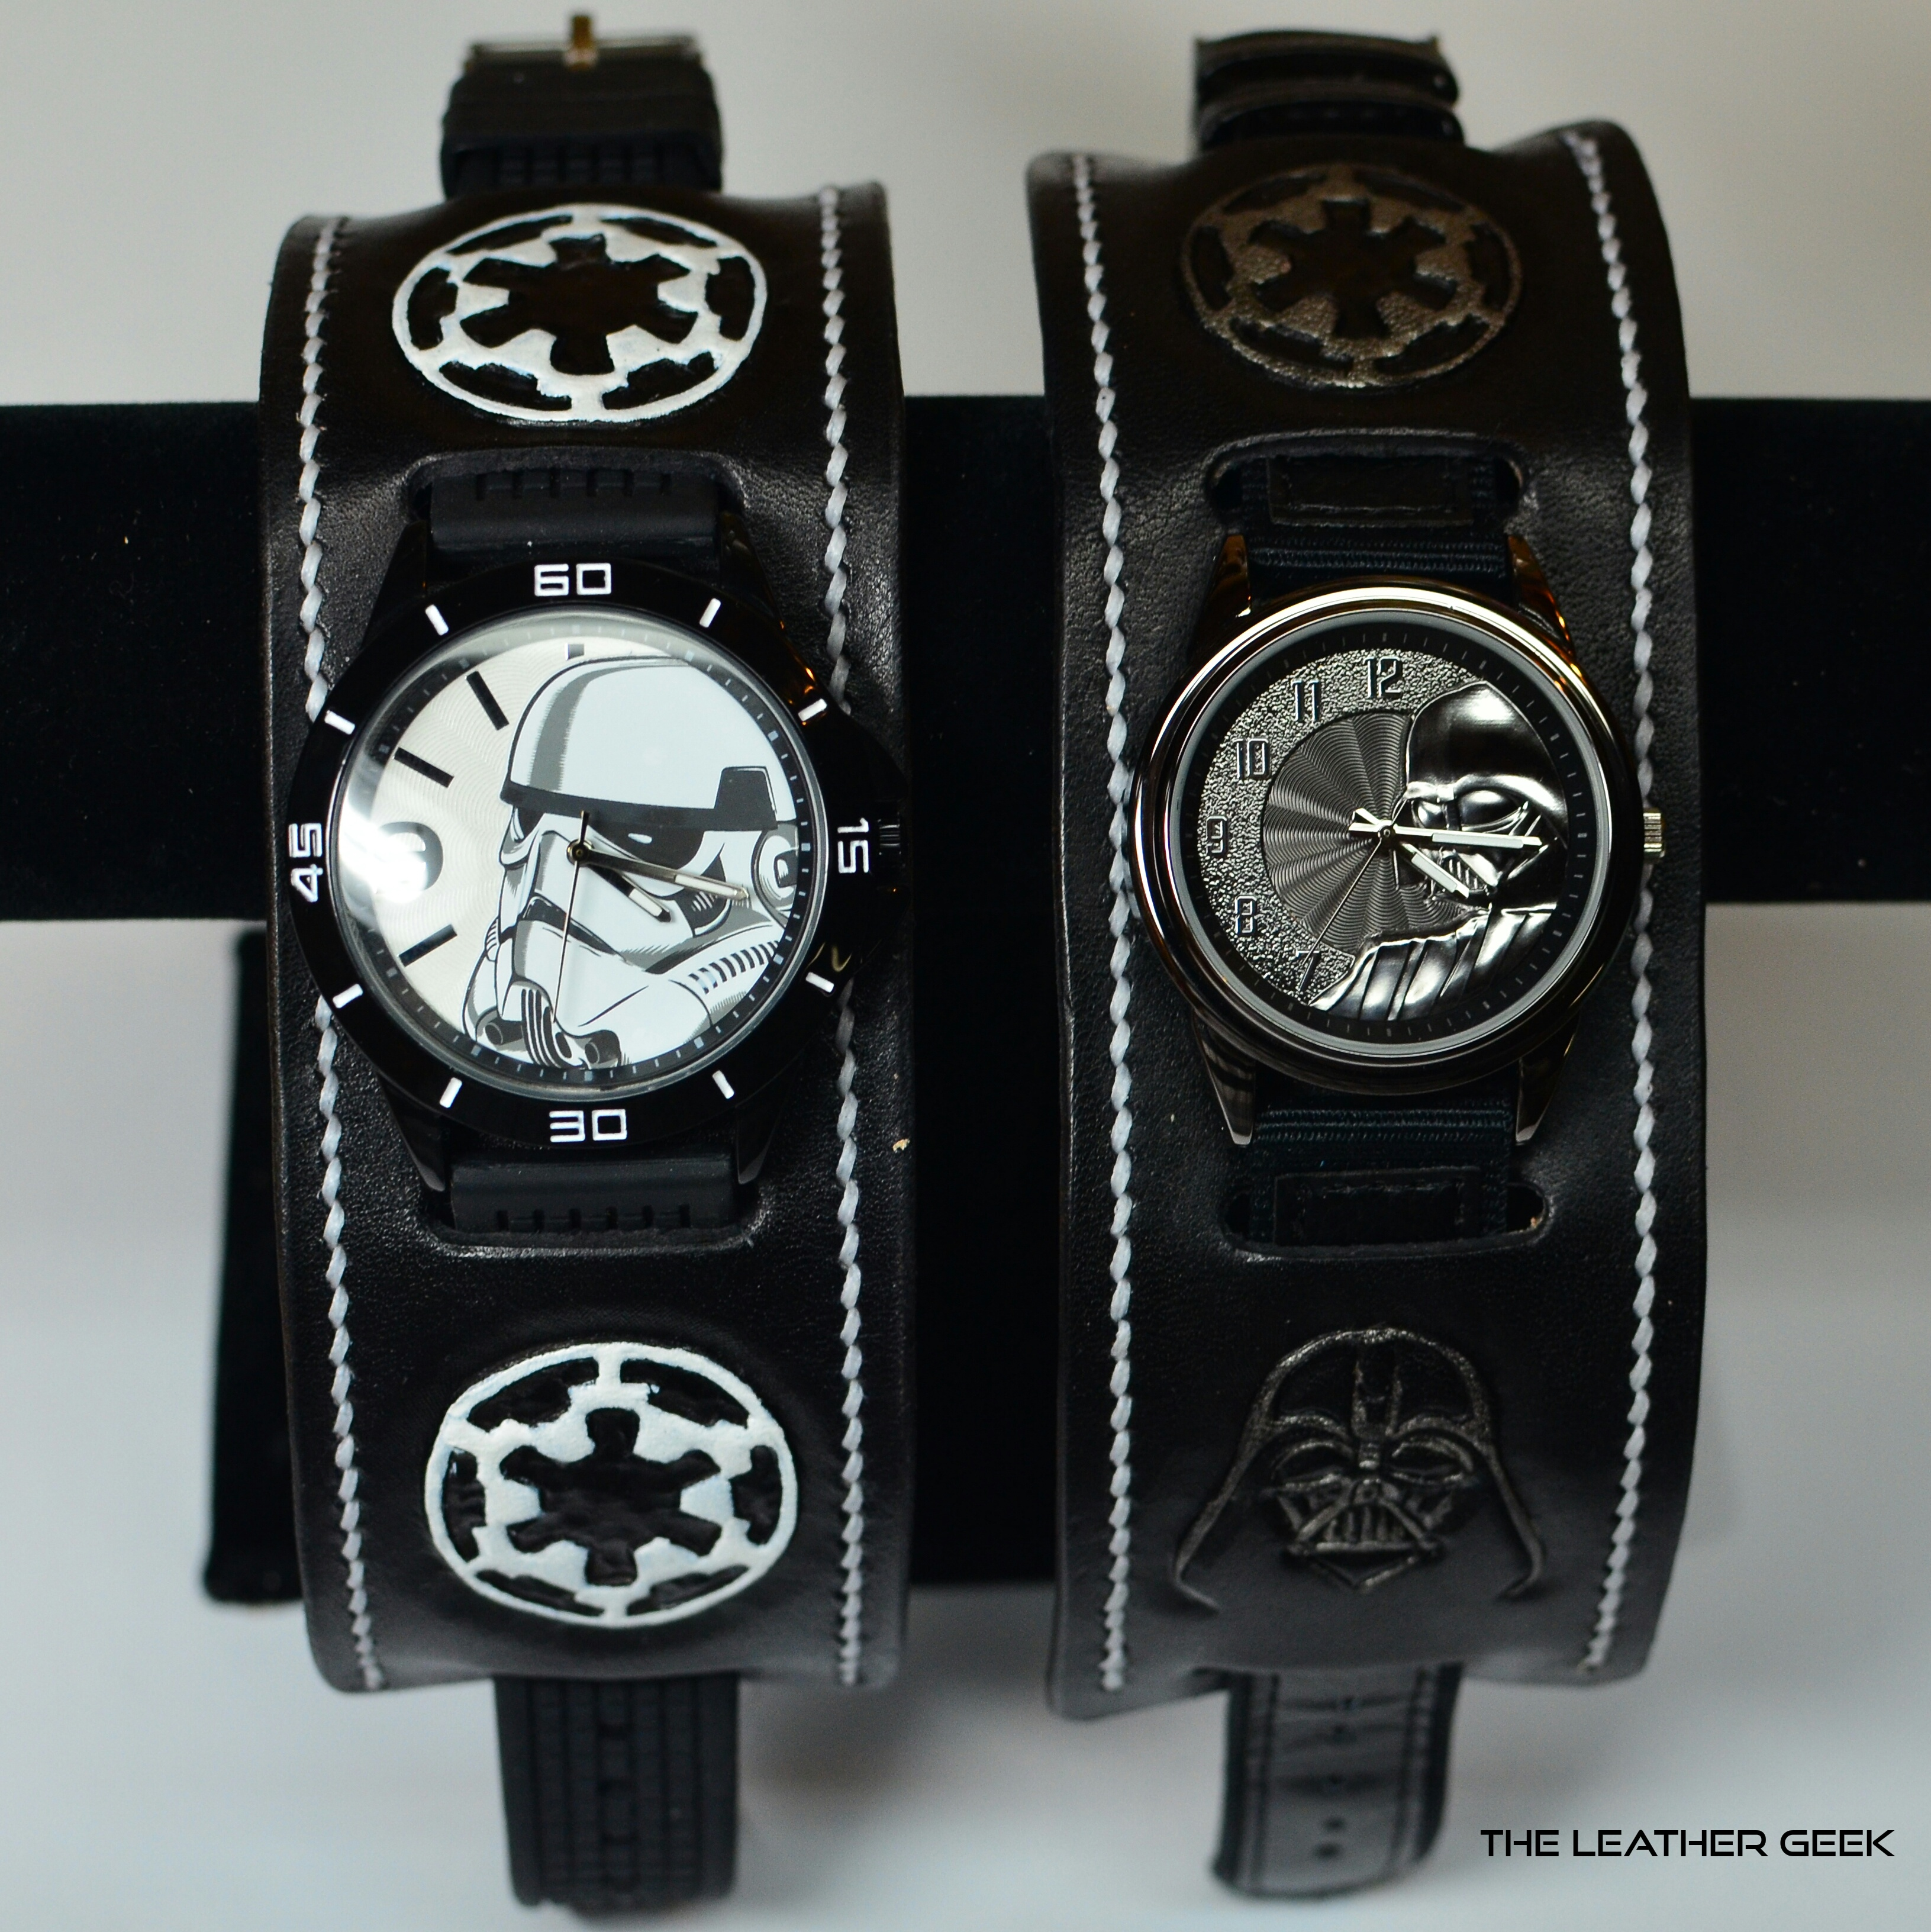 Stormtrooper and Darth Vader Watch